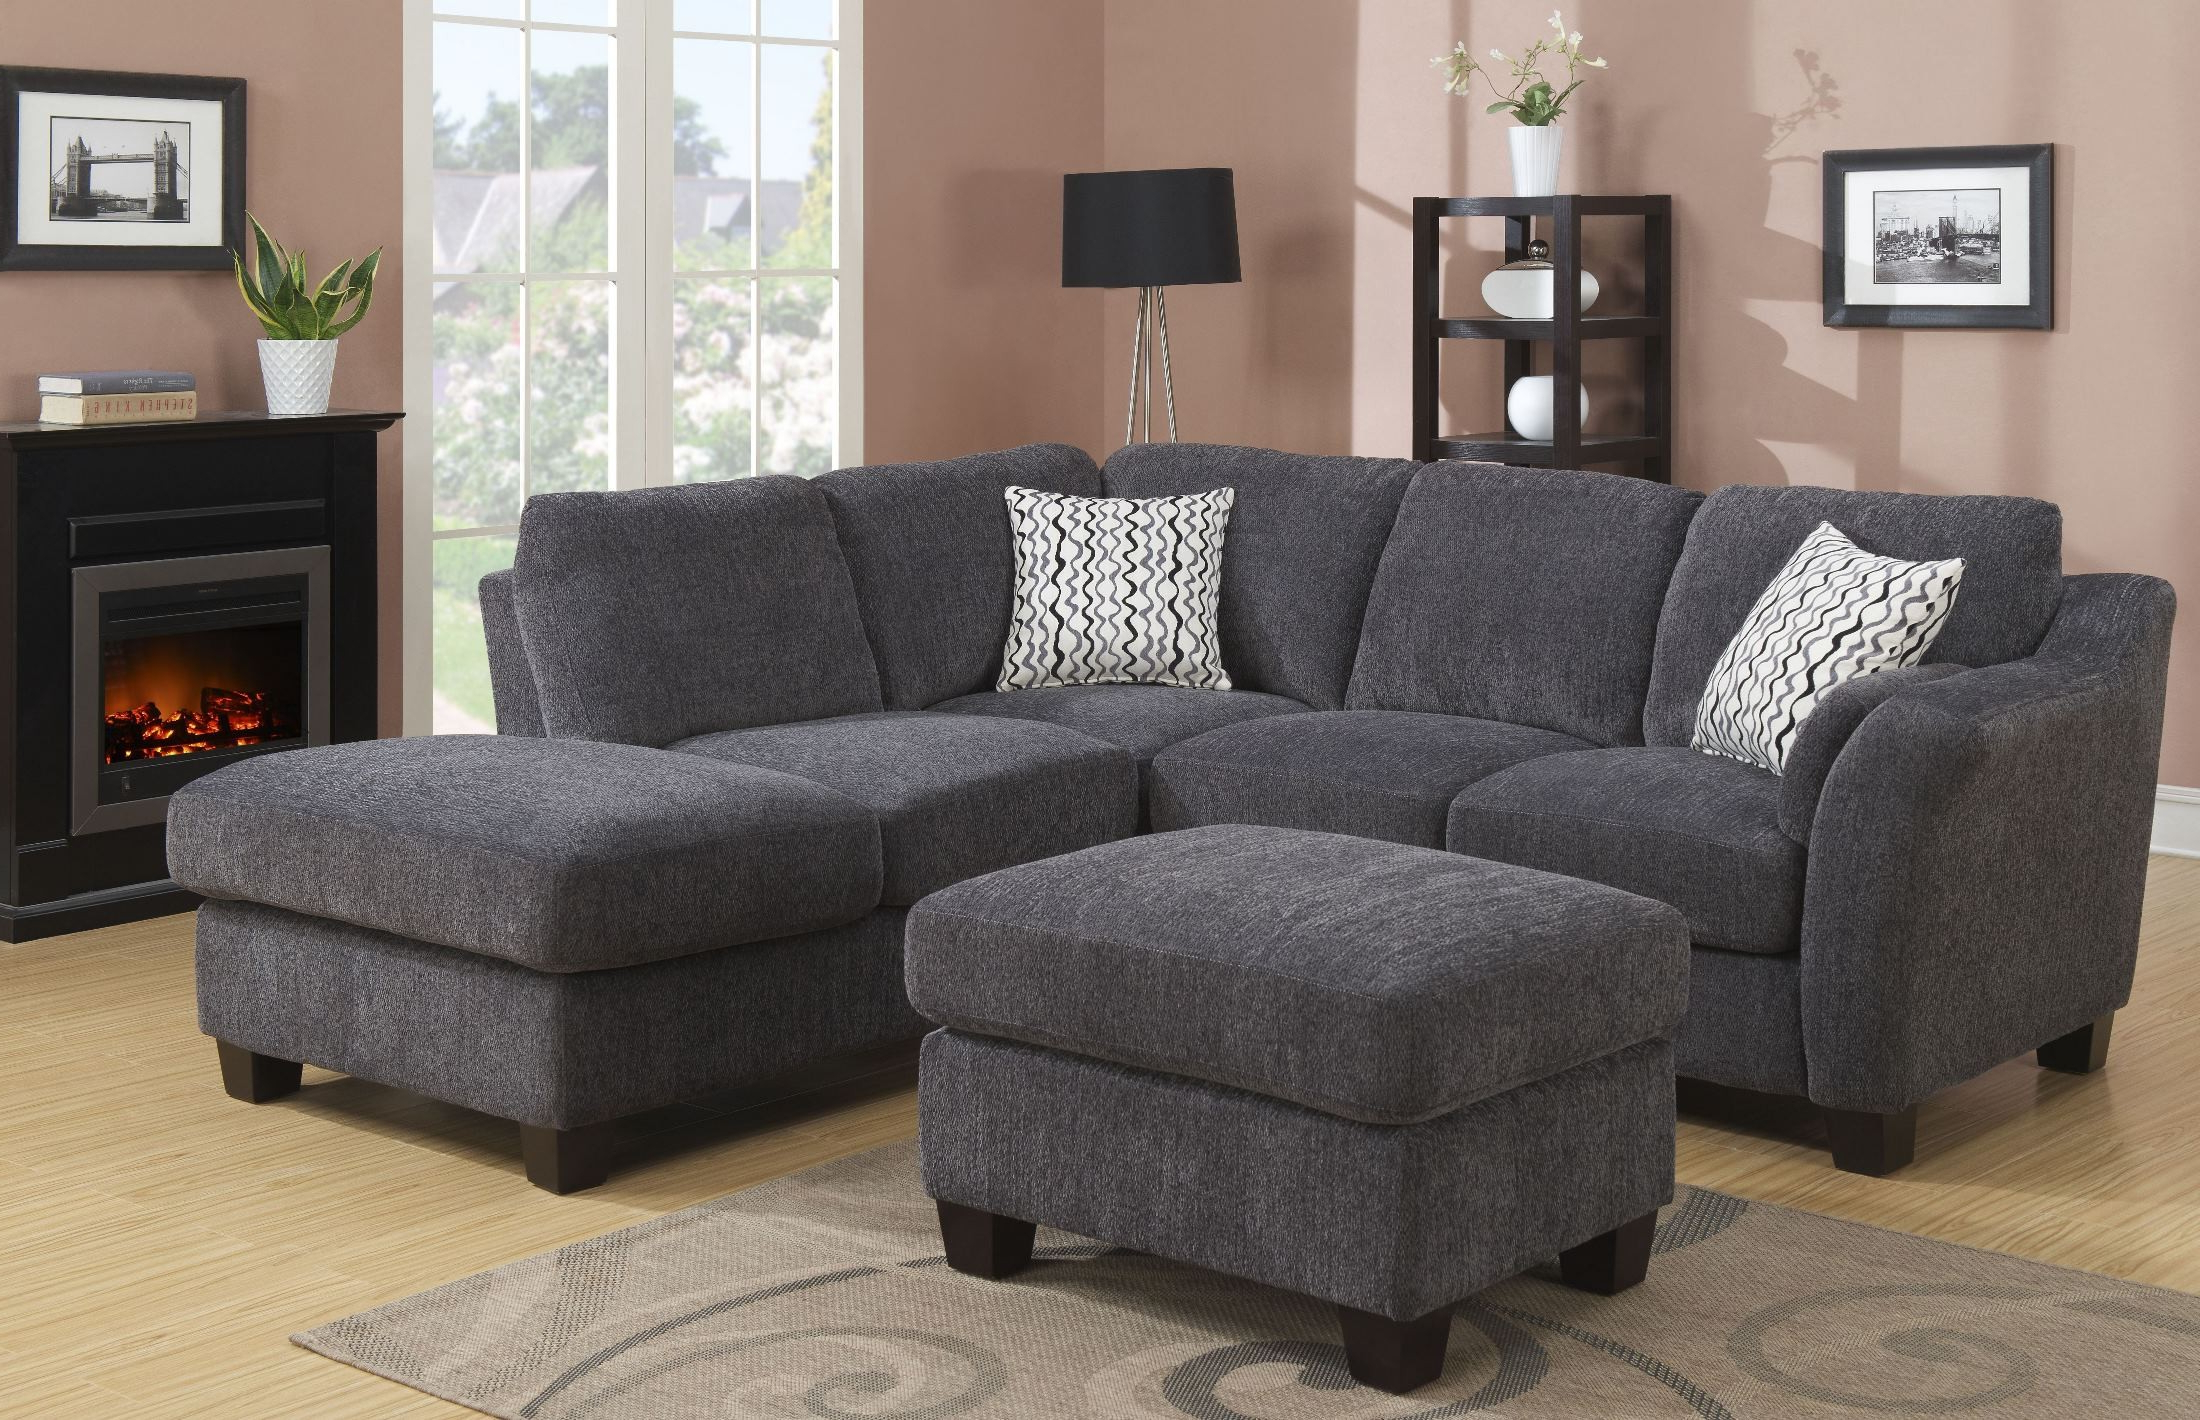 2pc Burland Contemporary Sectional Sofas Charcoal With Regard To Most Recent Clayton Ii Charcoal 2 Piece Sectional, U8060e 11 12 23 K (View 14 of 20)